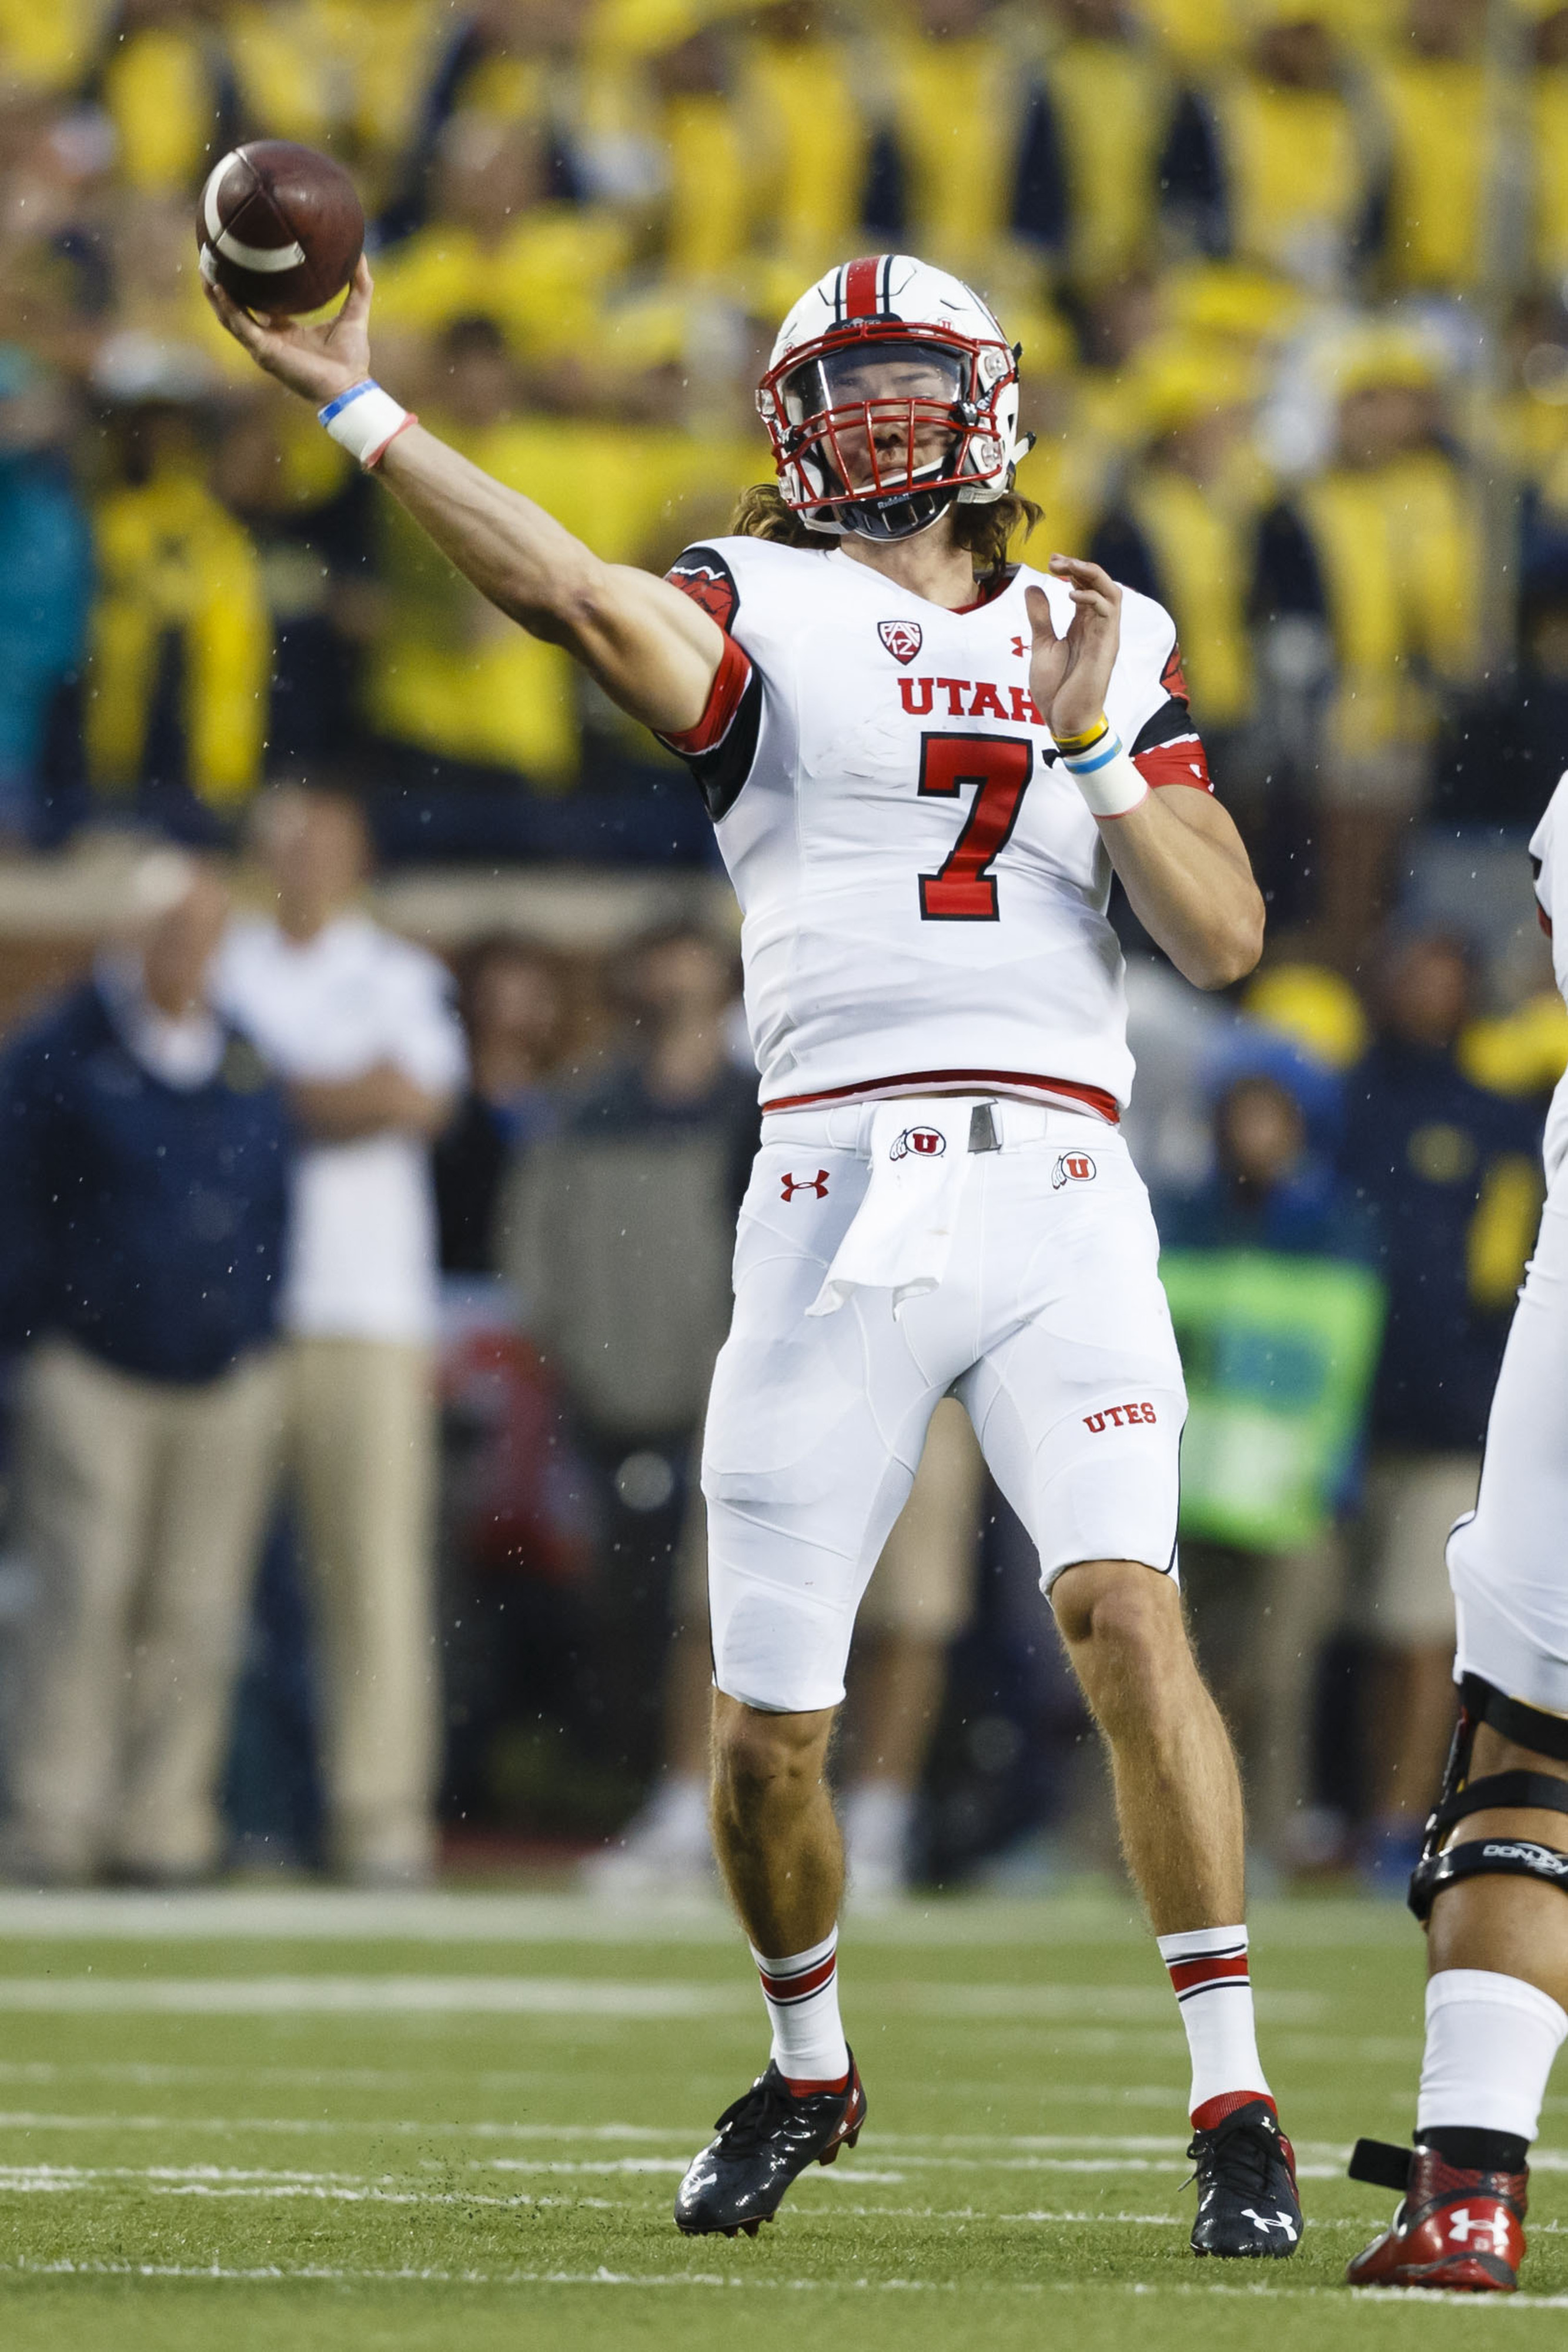 Utah quarterback Travis Wilson stuffed for the rest of the season any controversy at his position, leading the Utes to victory over Michigan.